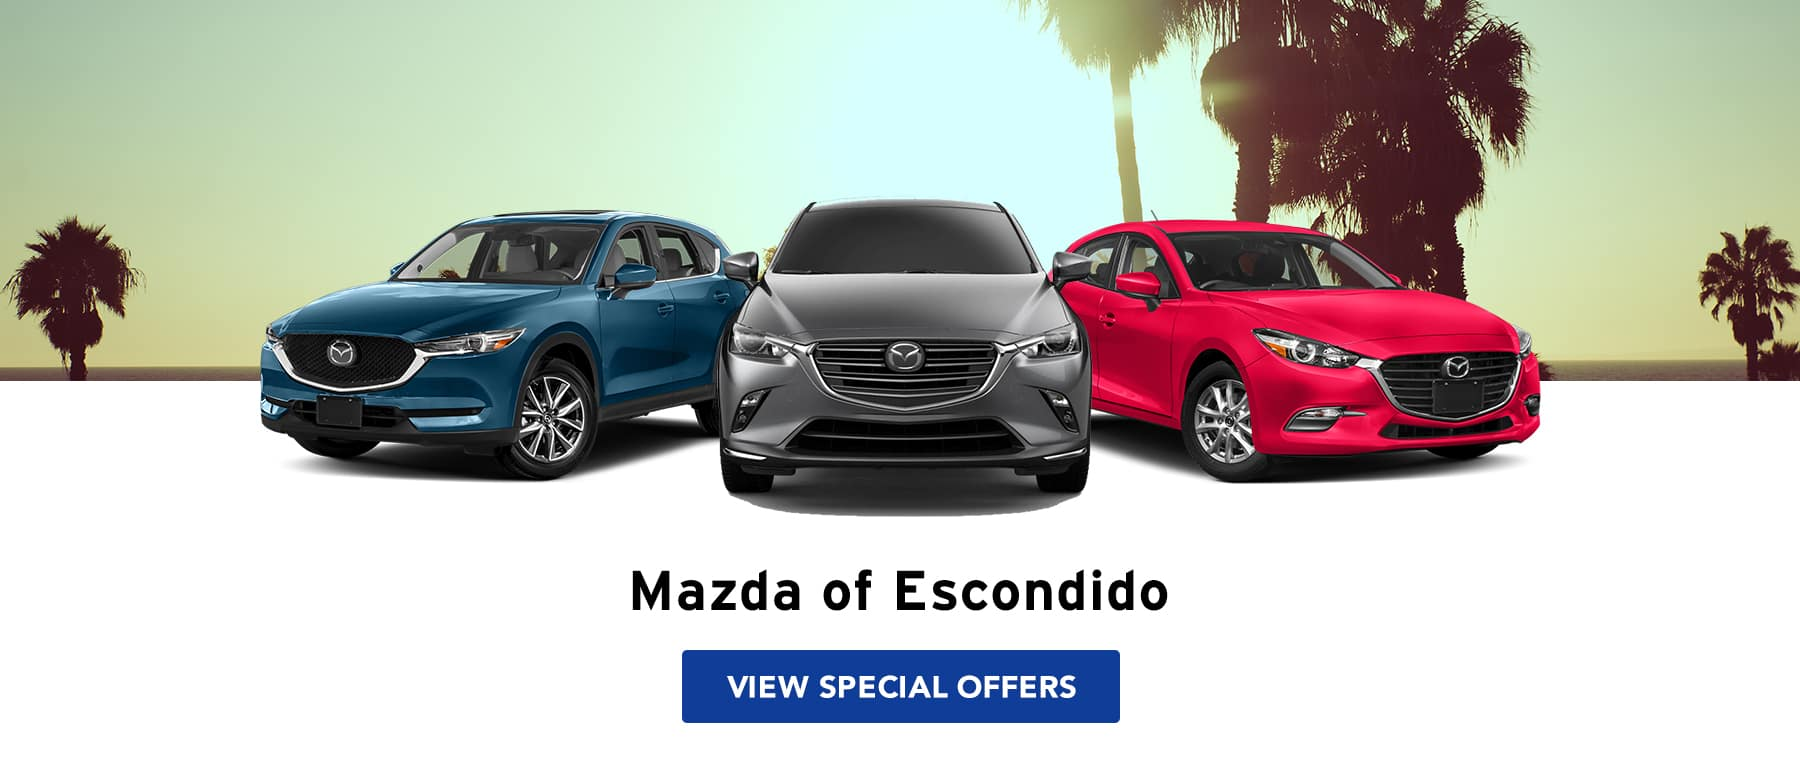 Mazda Of Escondido Mazda Dealer In Escondido Ca